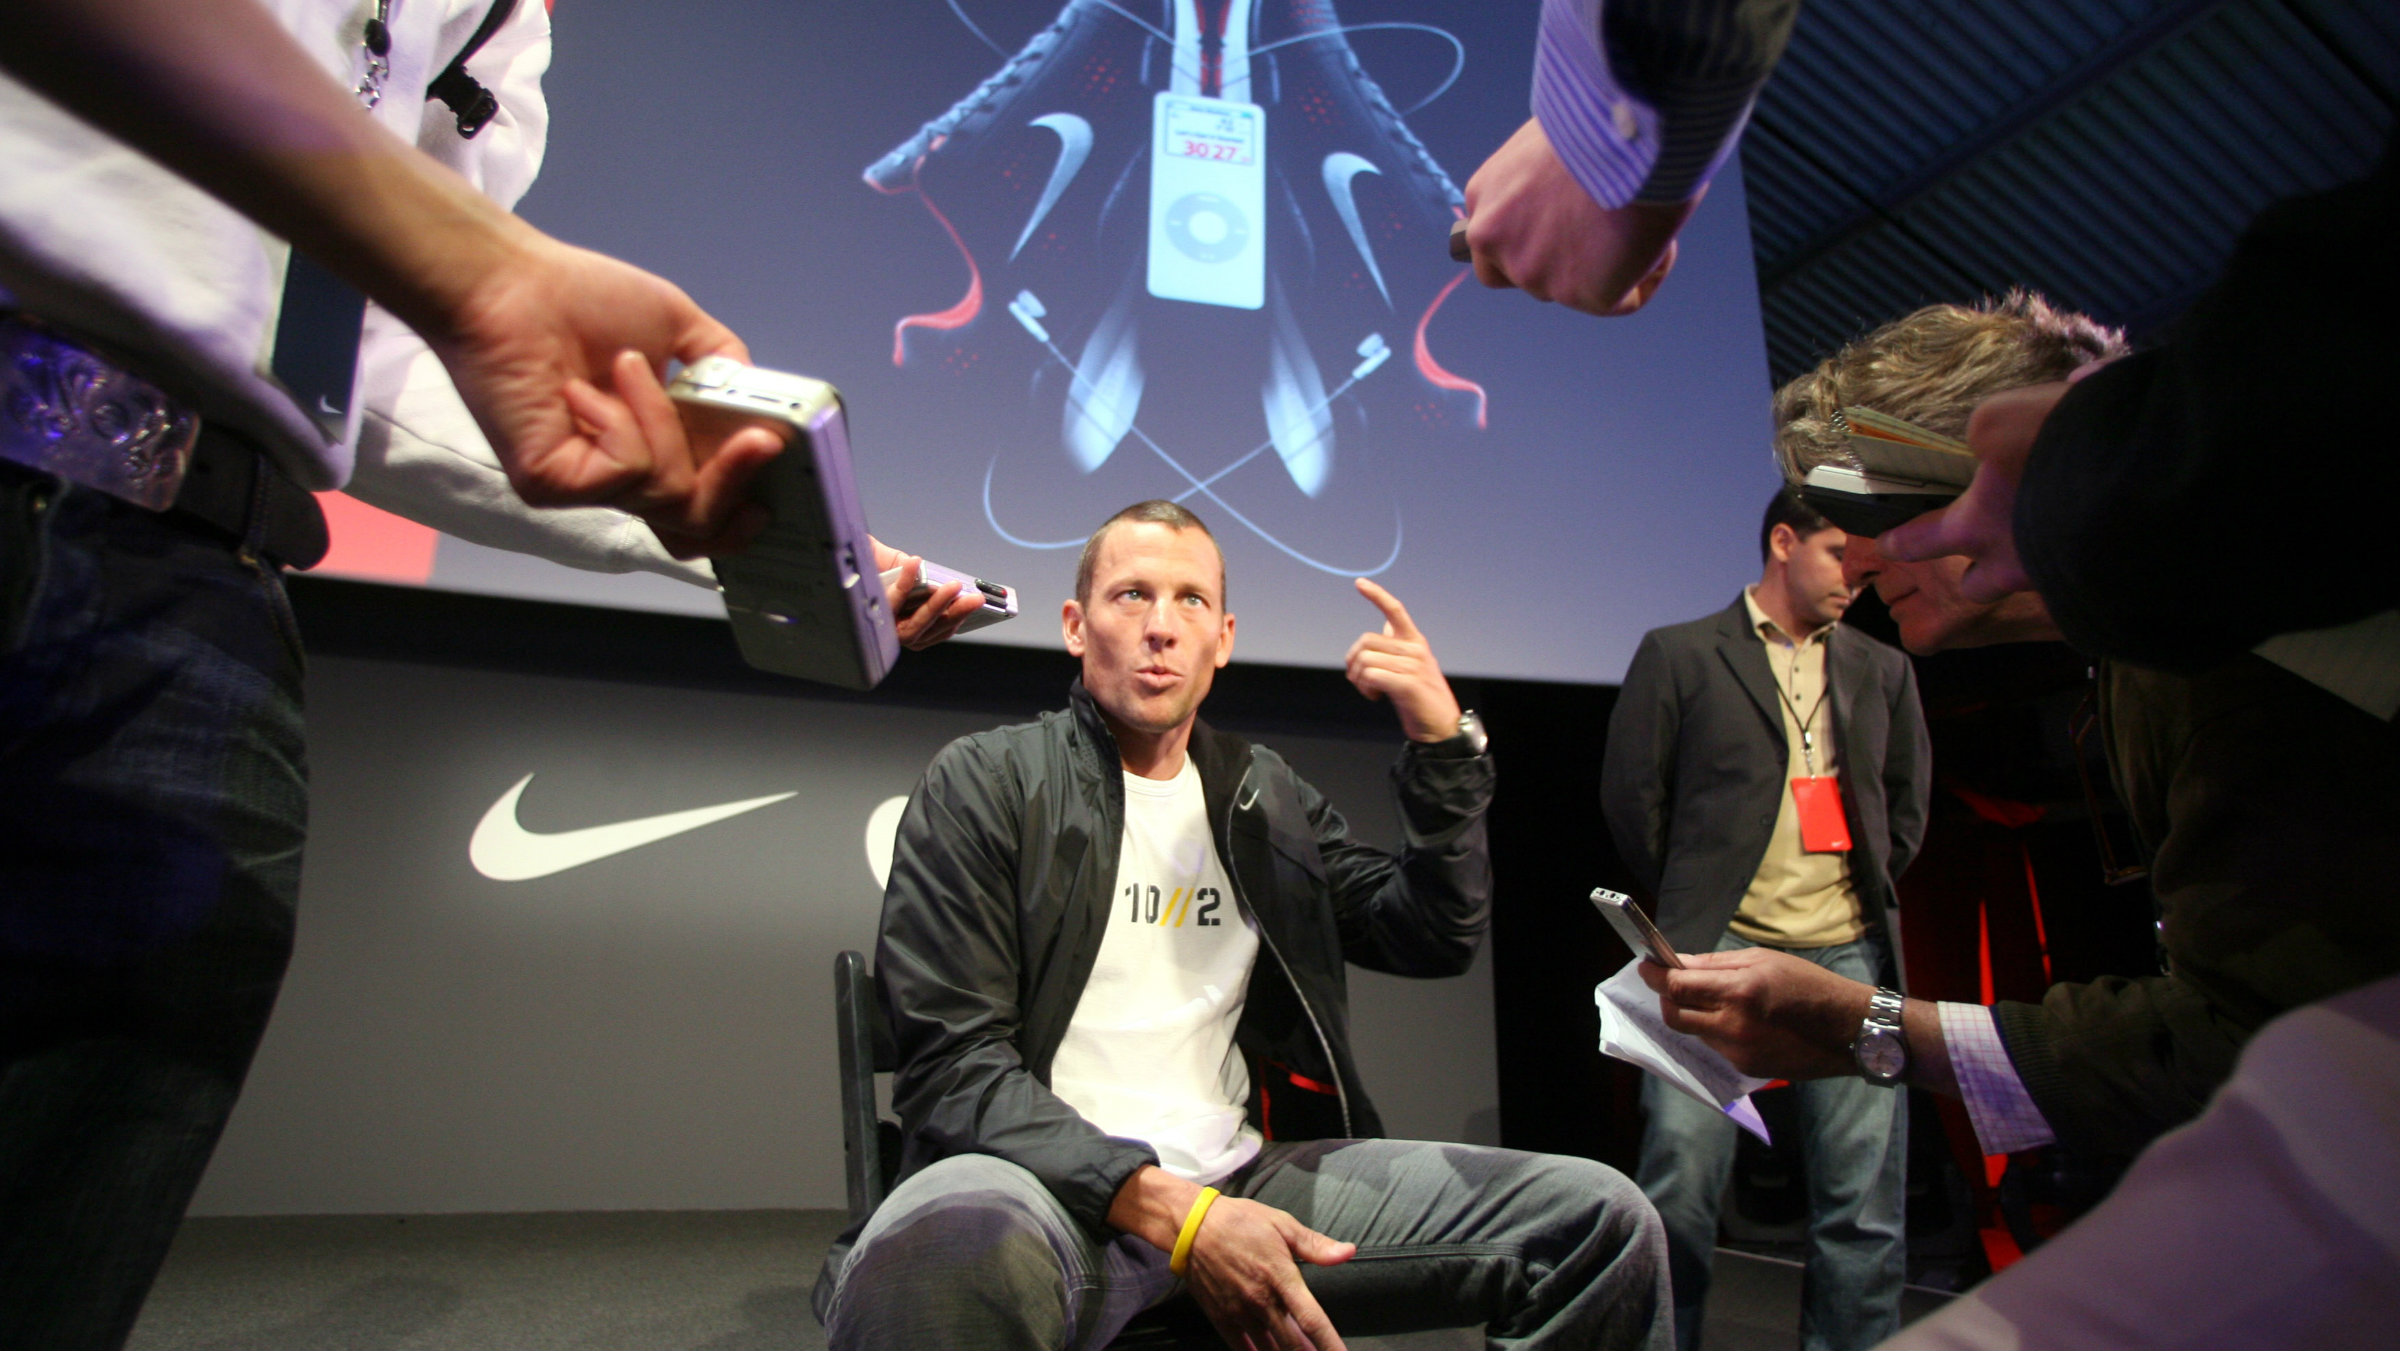 Nike dropped Lance Armstrong after doping charges surfaced. Now that he's admitted to it, the company wants him back?